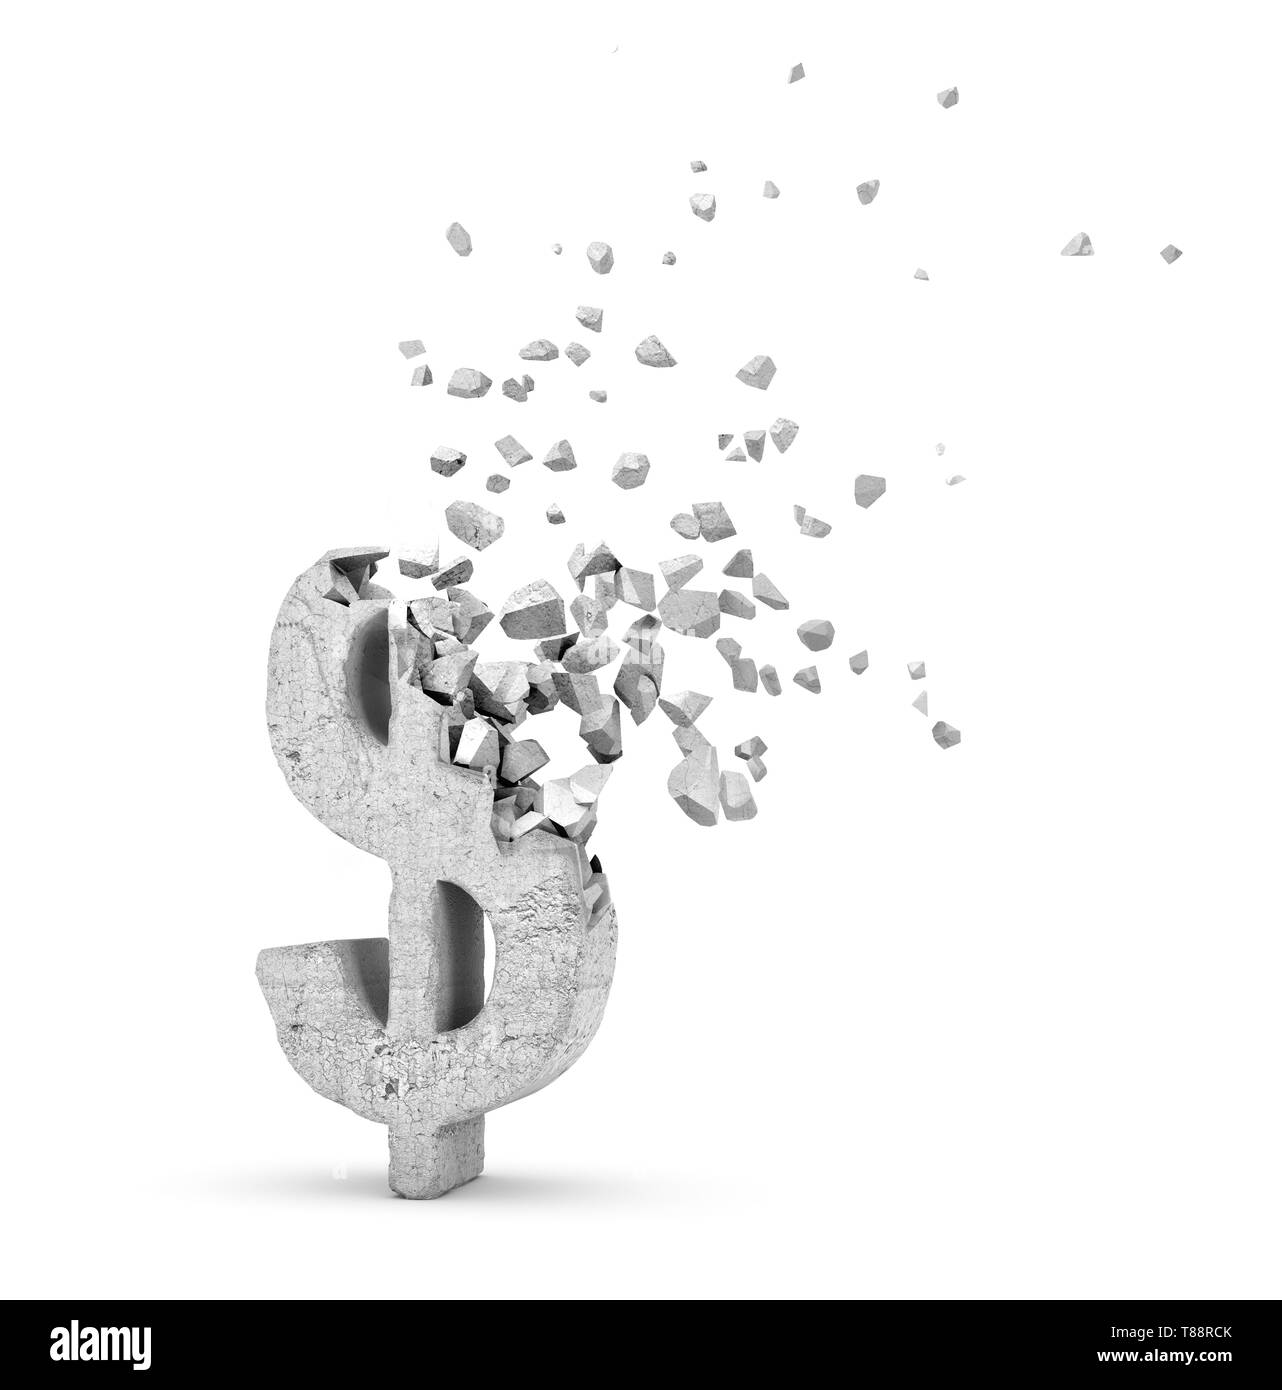 3d rendering of light-grey concrete dollar sign starting to dissolve into pieces on white background. - Stock Image